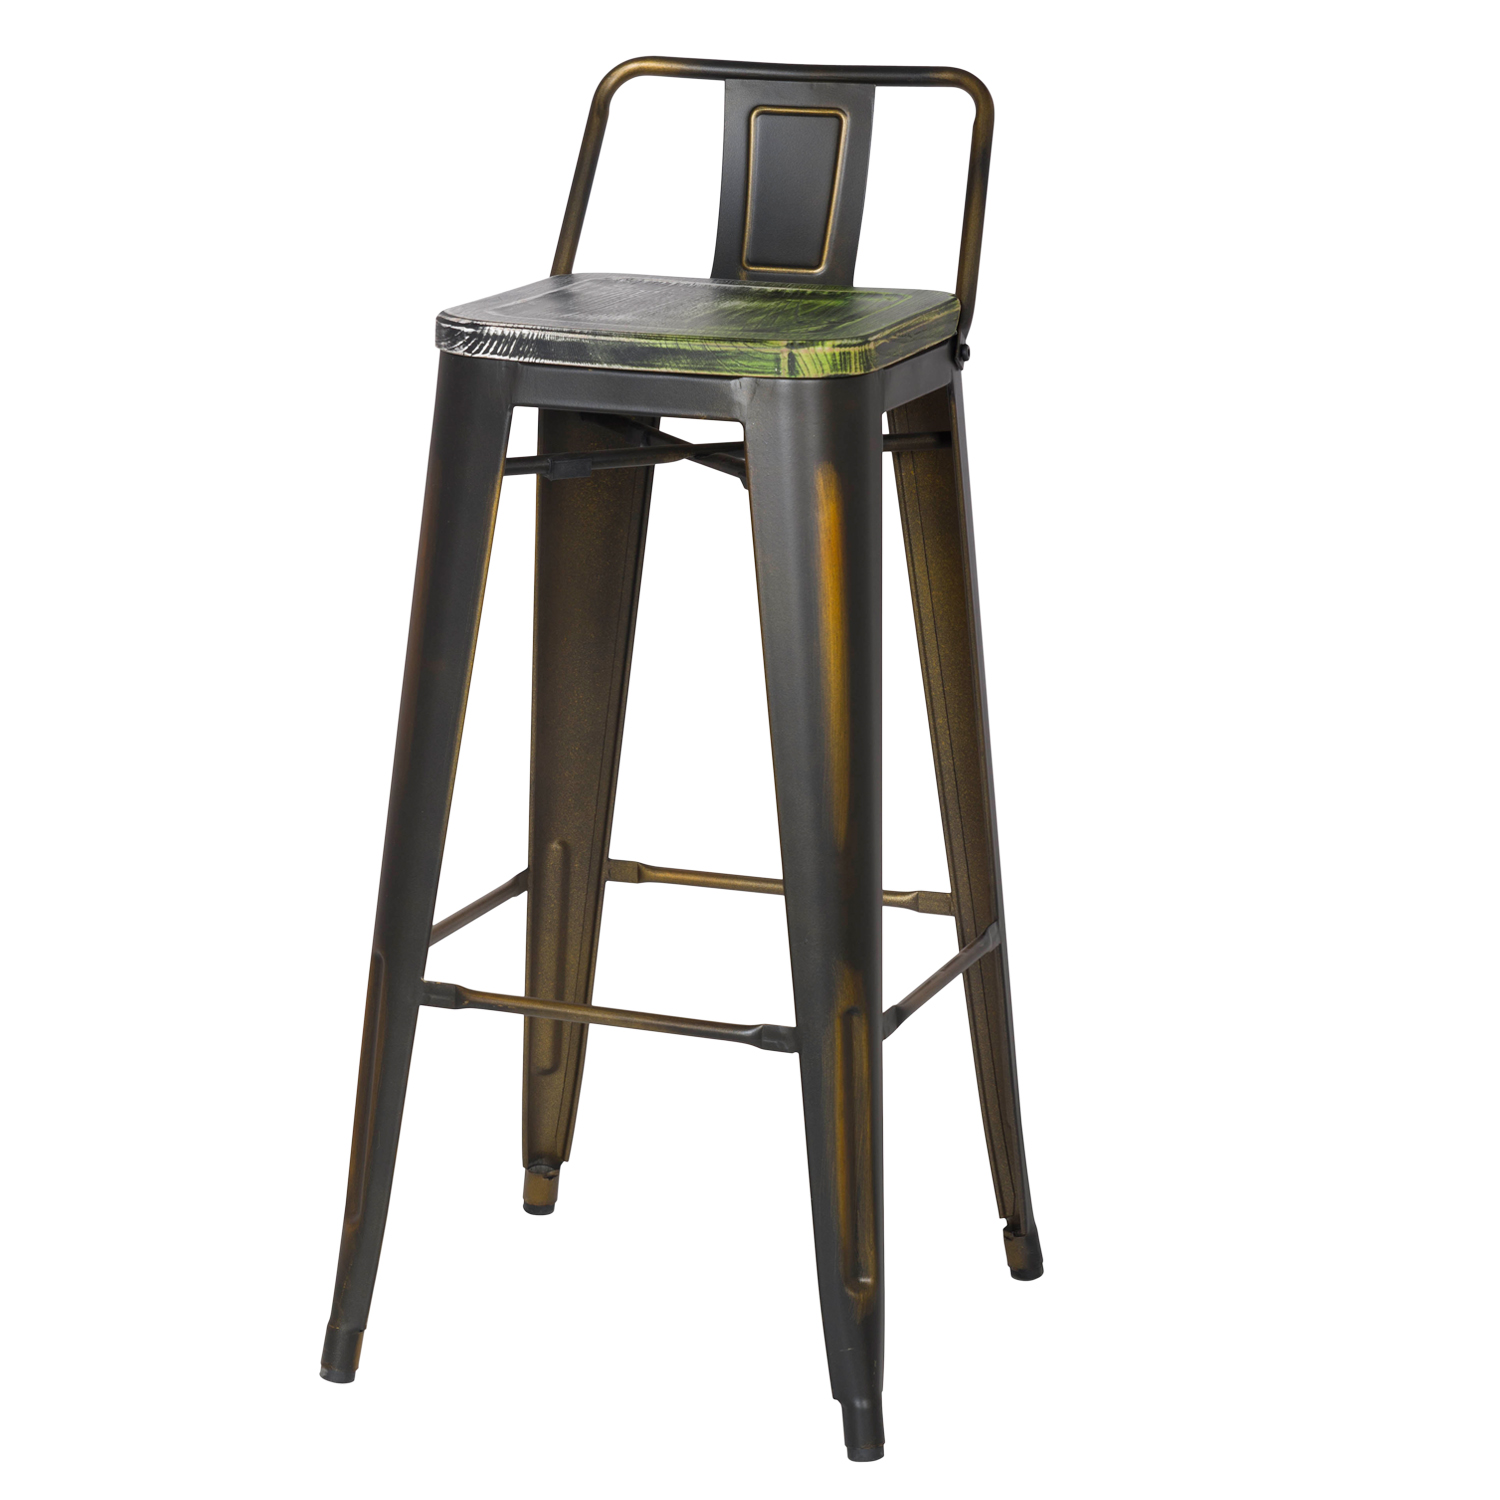 distressed metal furniture.  Metal 30 Inches Distressed Metal Bar Stool With Low Back  On Furniture